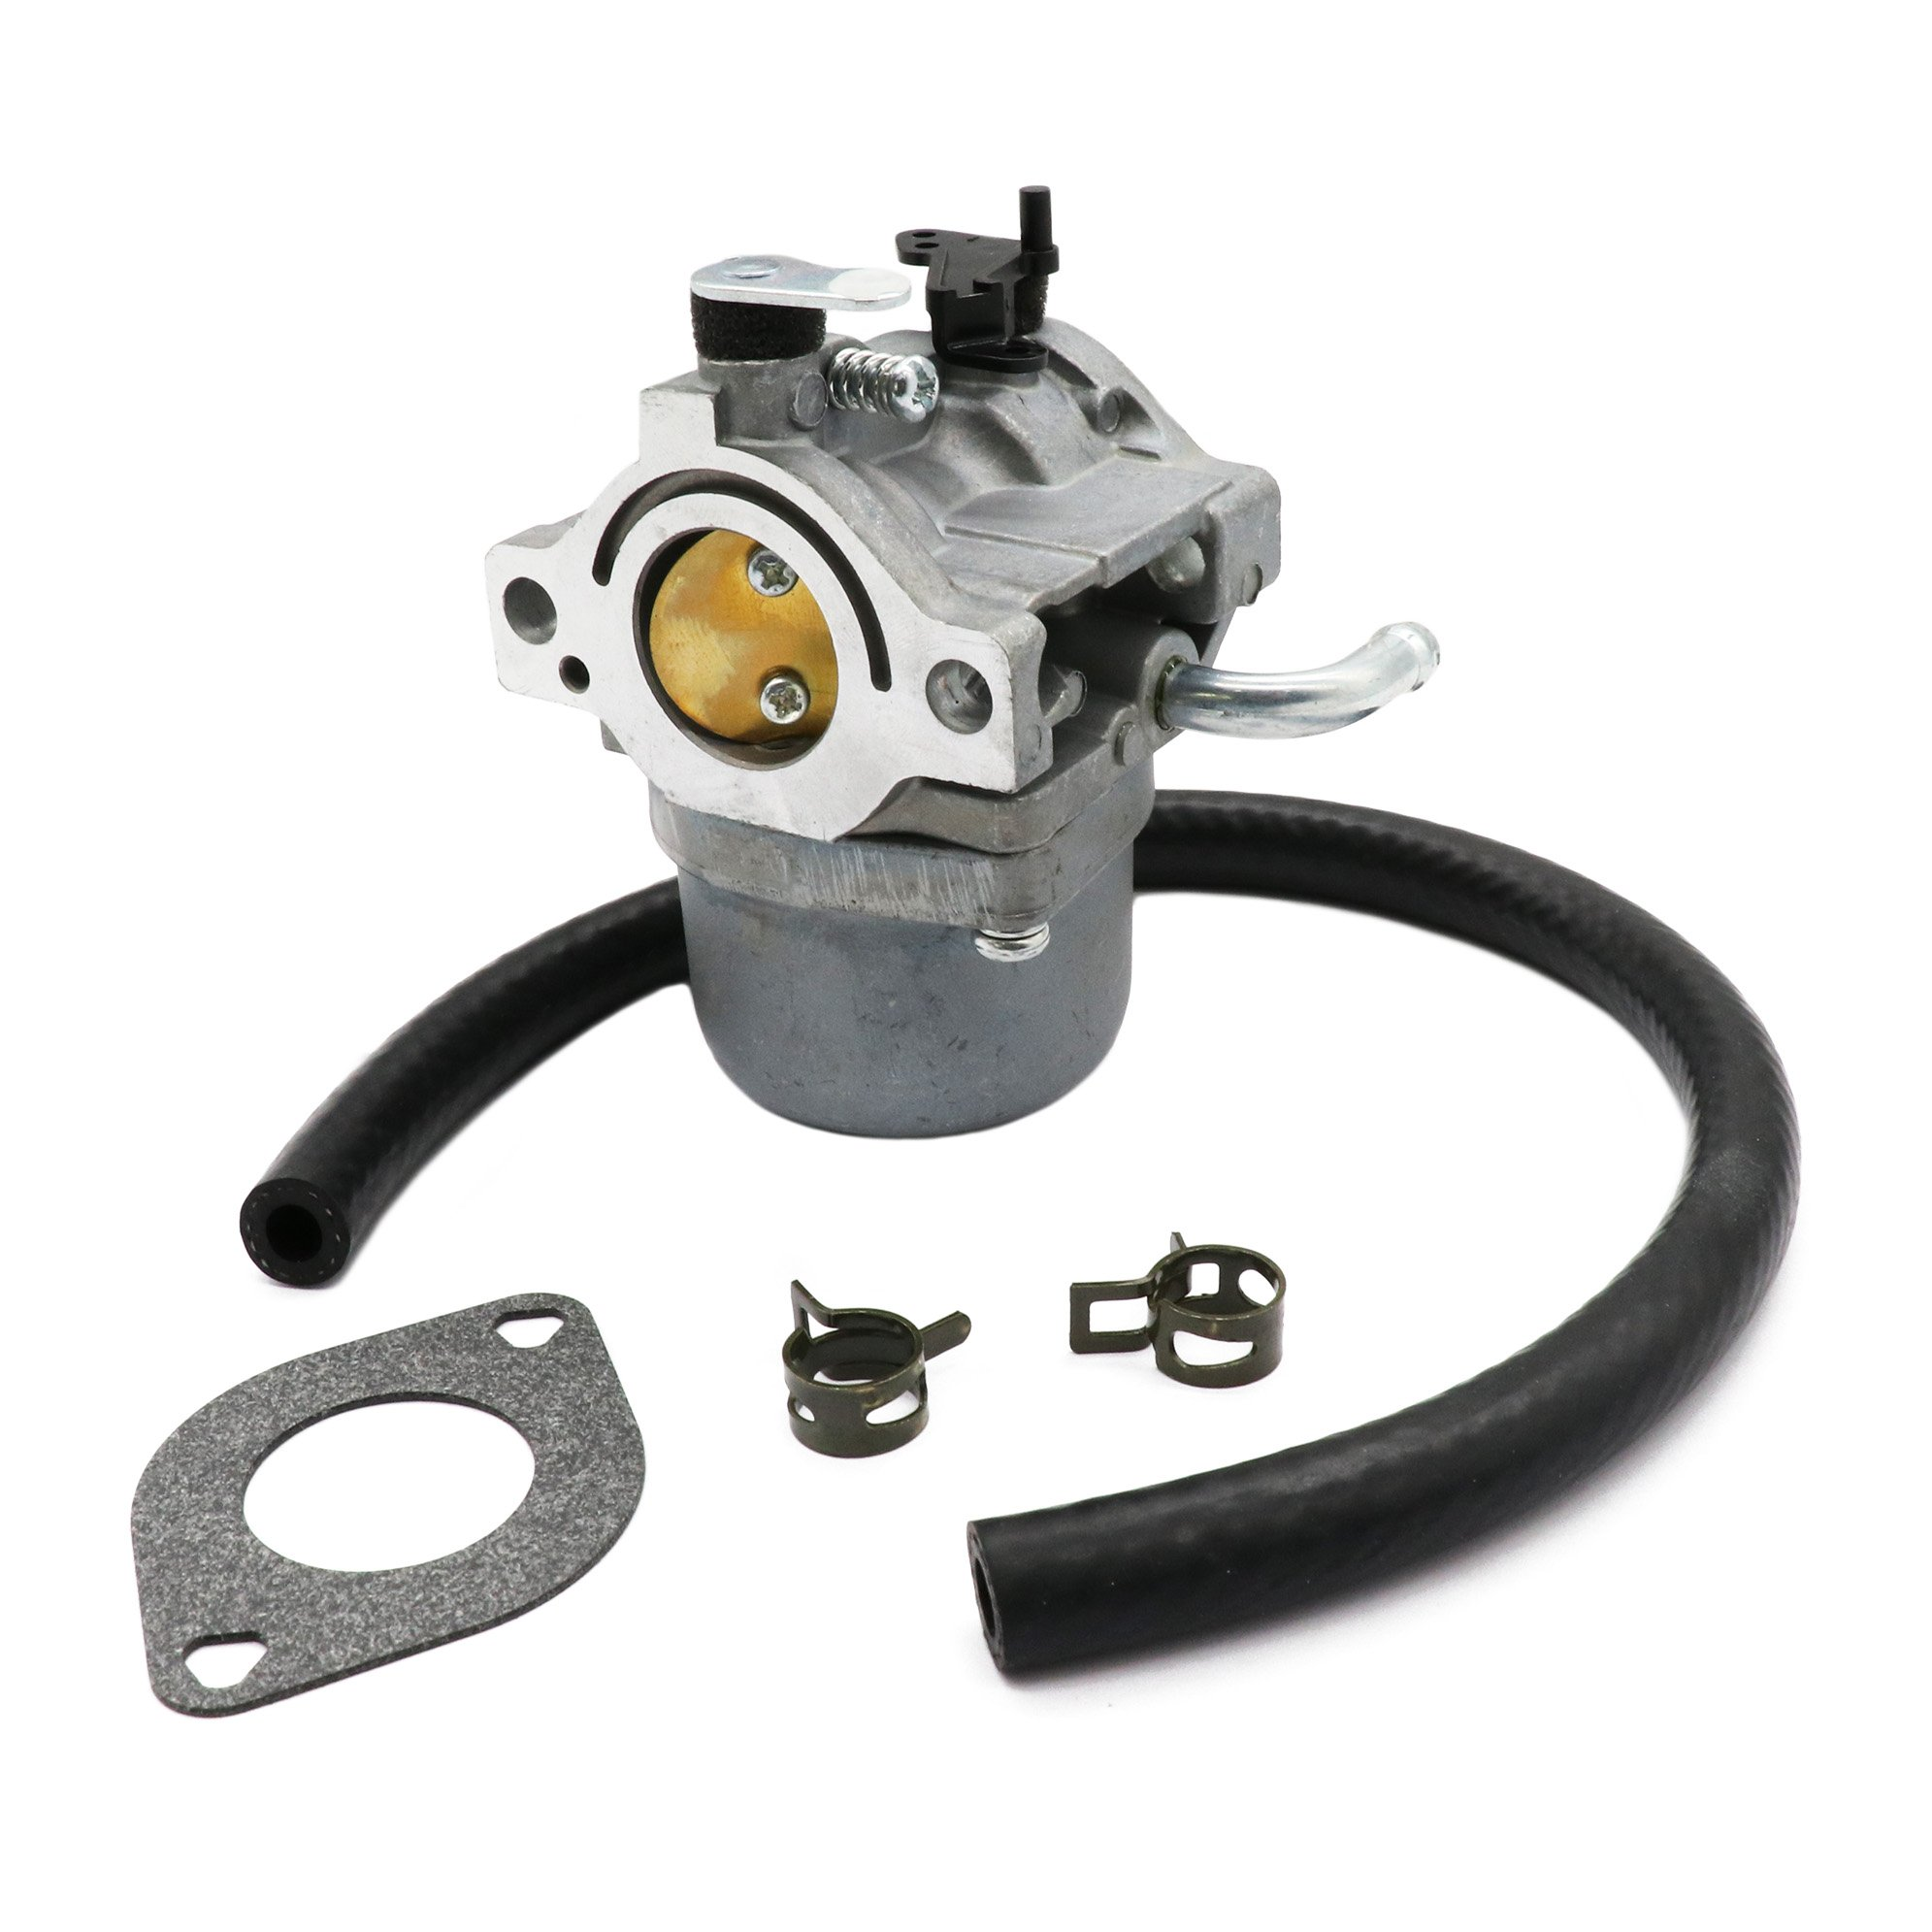 hight resolution of get quotations new replace carburetor for briggs stratton 593432 794653 791266 engine carb 210000 280000